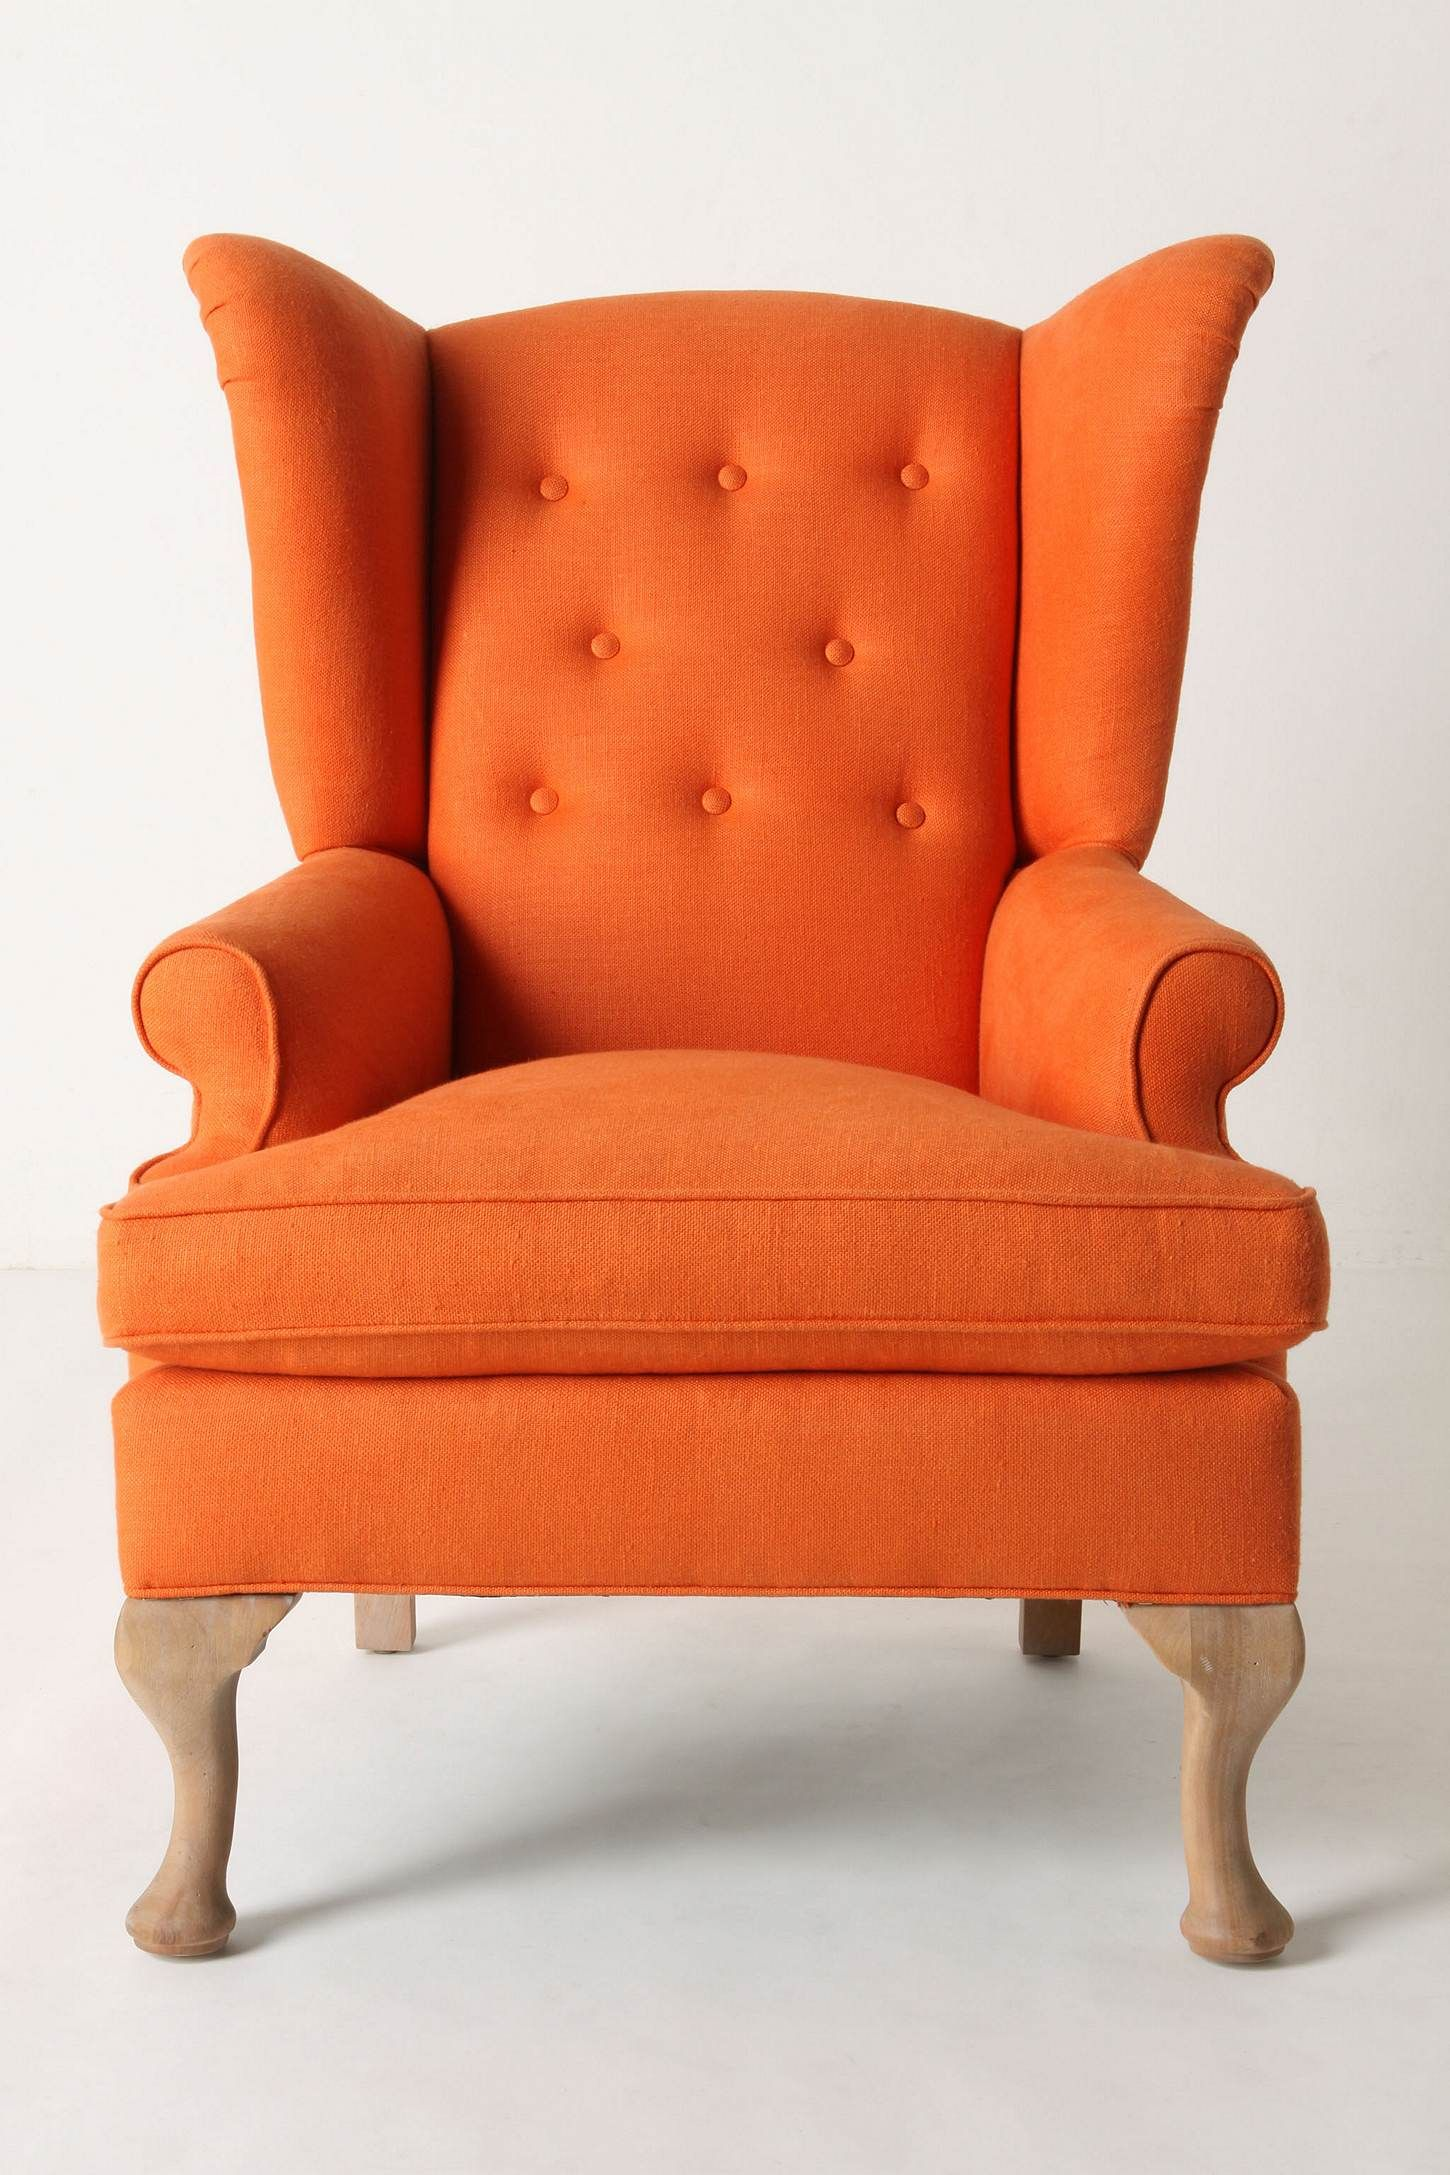 Orange Chairs Living Room Affordable Decor Armchairs The Shape And Wings